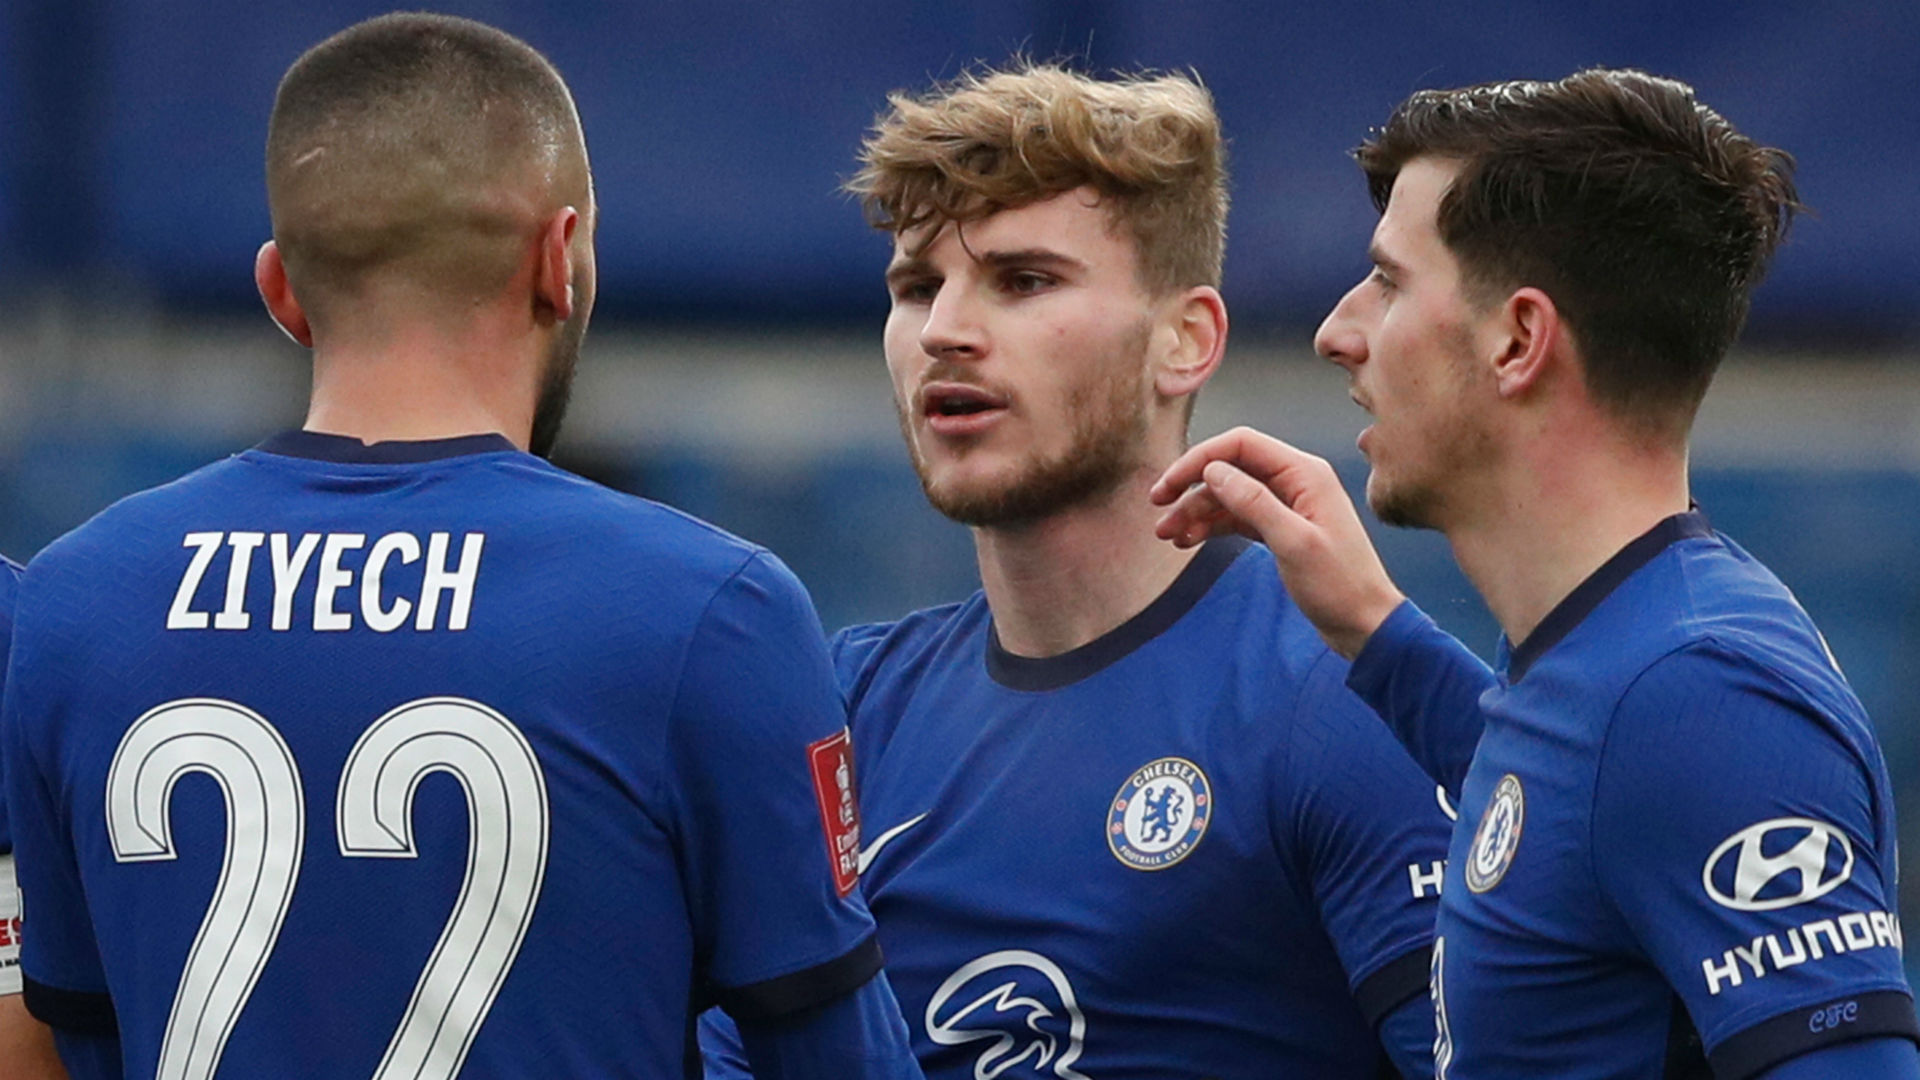 Lampard sees Havertz and Werner take 'small step' as Chelsea cruise in FA Cup